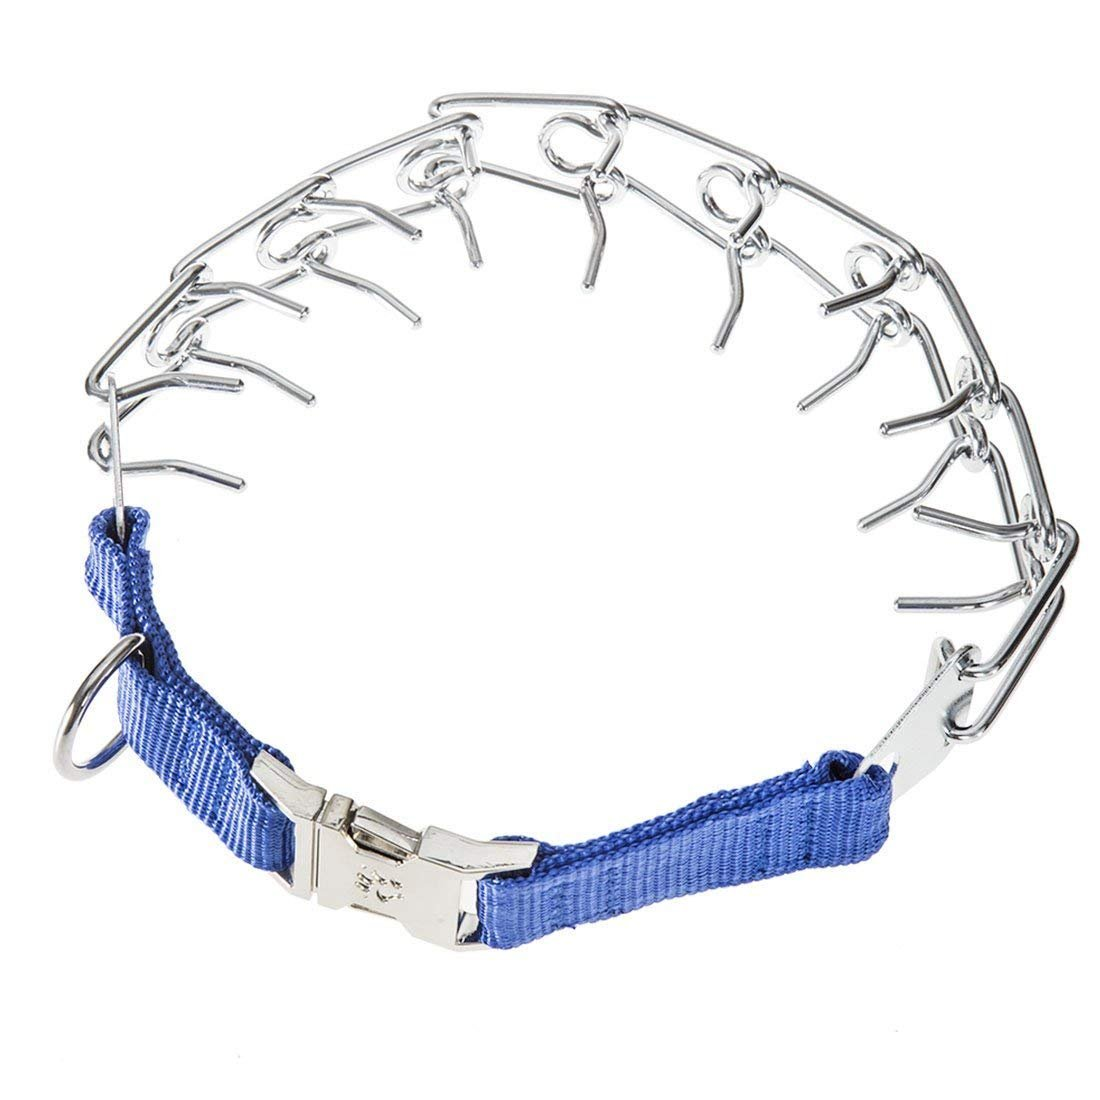 GAITY PET Dog Prong Collar Training Metal Gear Pinch Collar for Dogs, Stainless Steel with Silver Plating, Easy-On Plated Adjustable Training Dog Collar for Medium Large Dogs, Blue